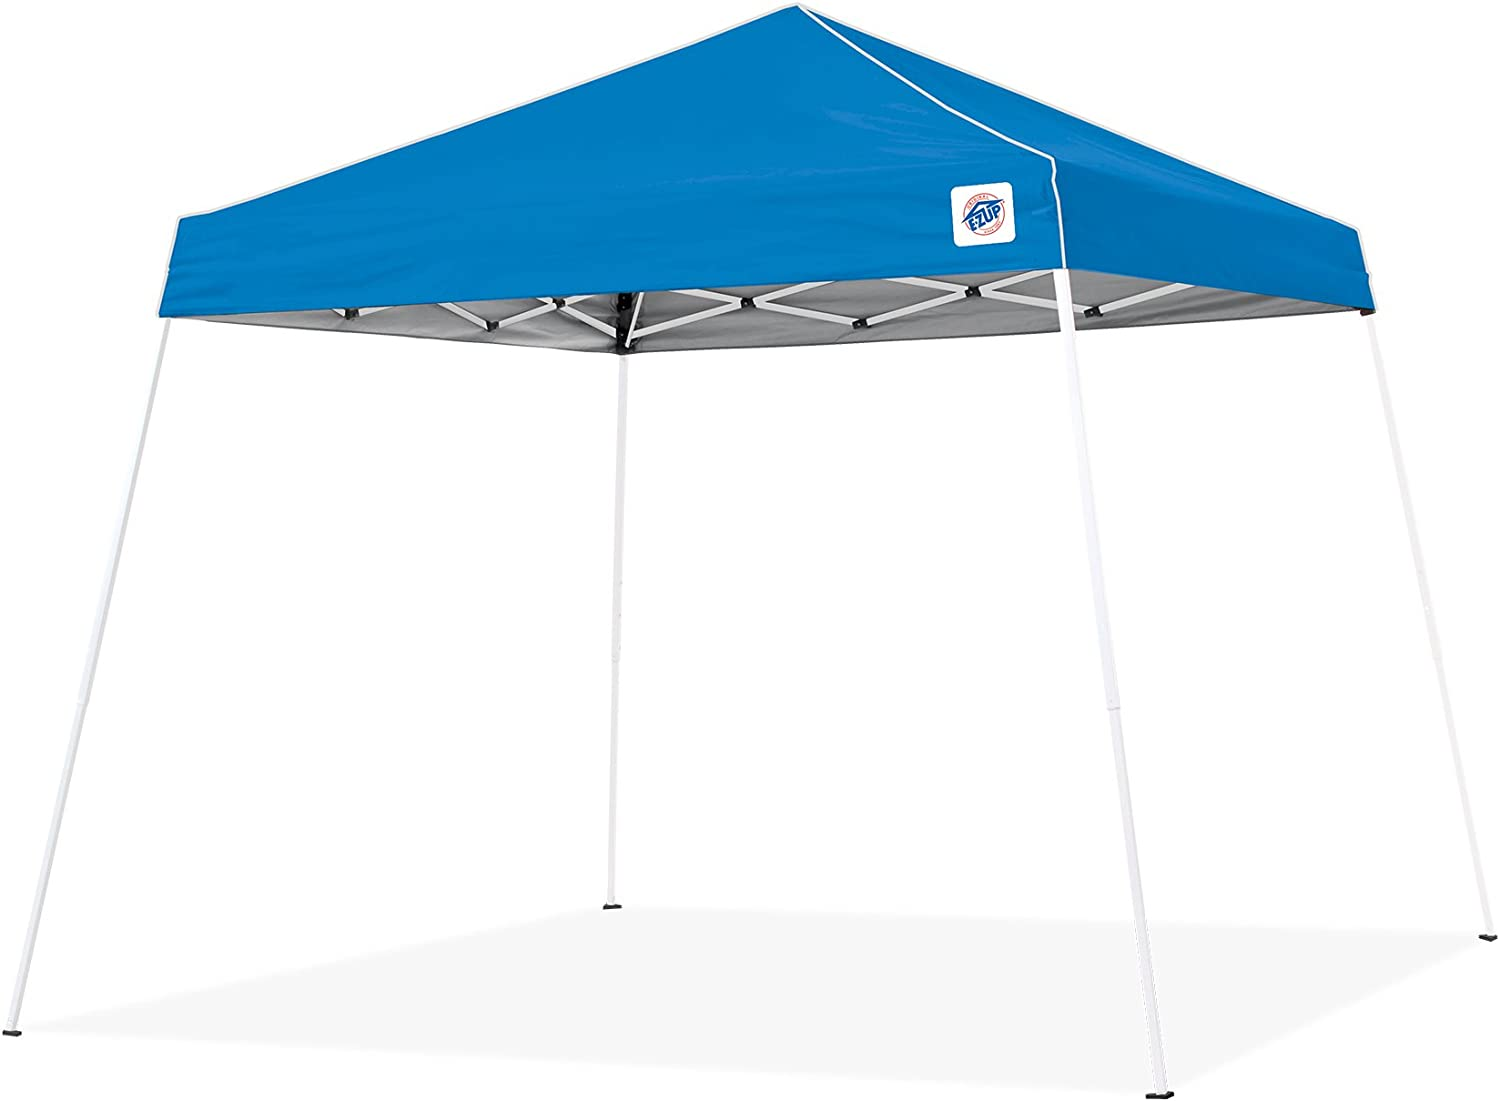 Instant shelter popup canopy is the best for camping